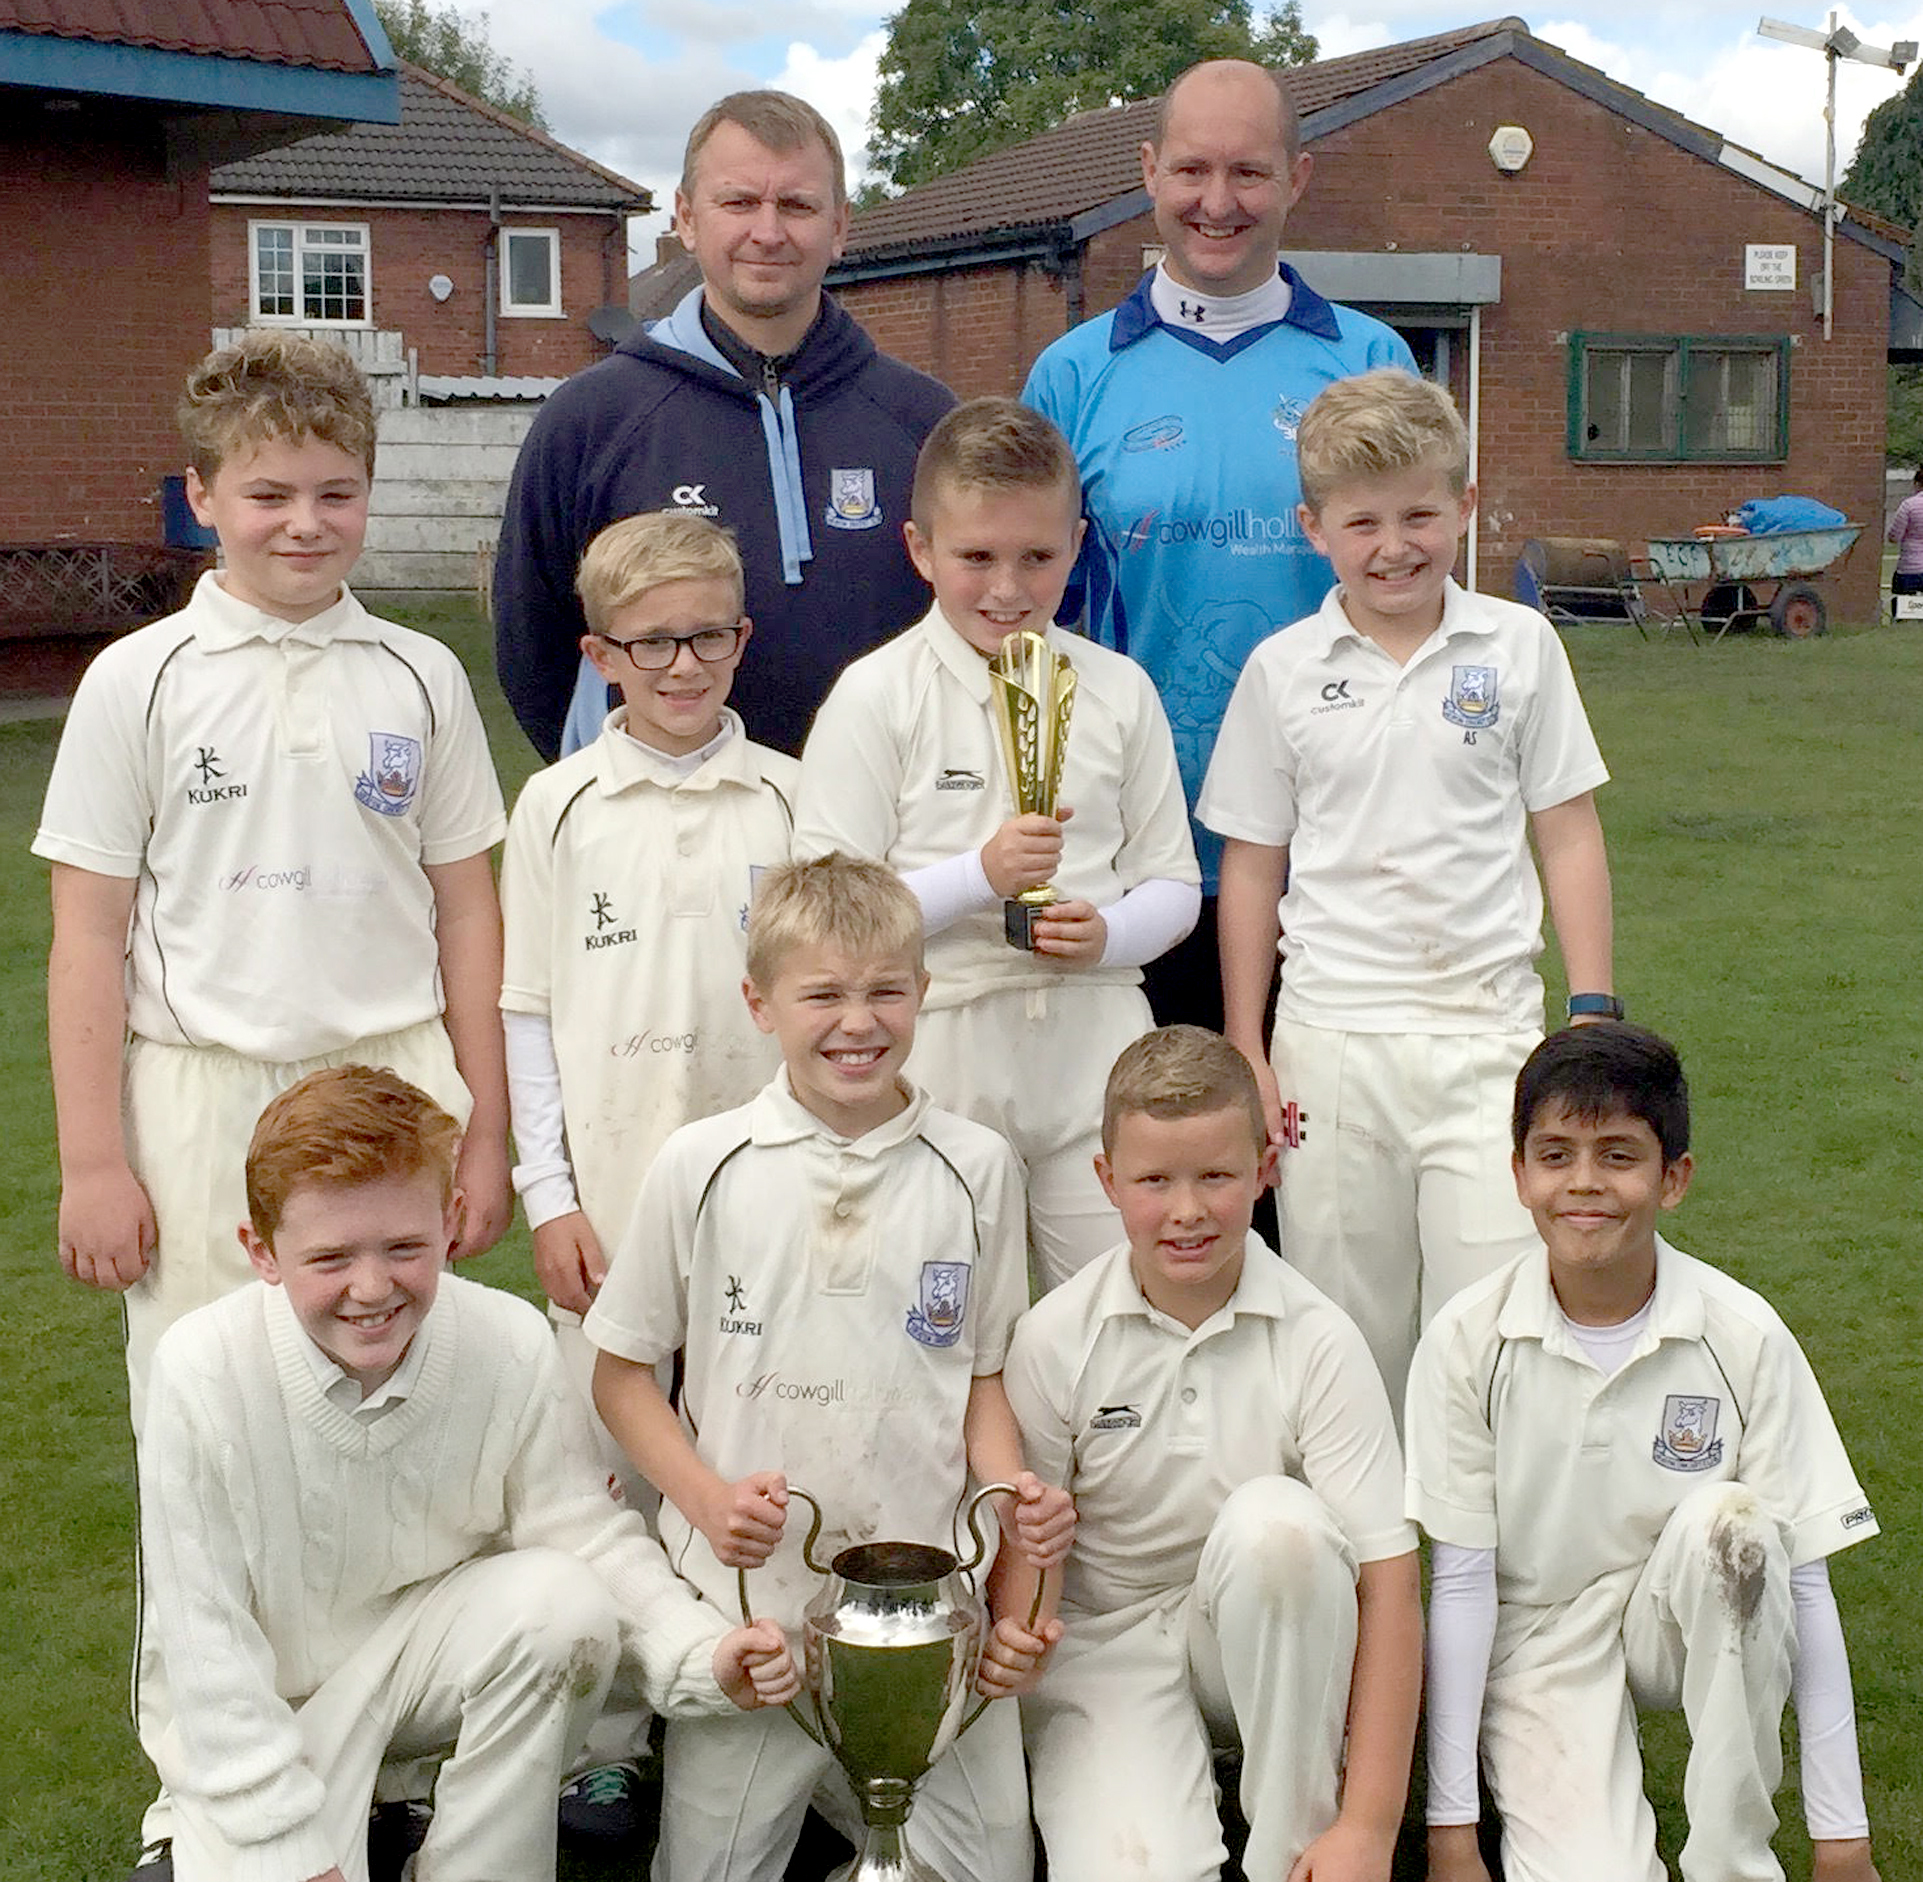 CHAMPIONS: Heaton Under-11s, from left, back, coaches Simon Lightbown and Craig Vickers, middle row, Finlay Rennie, Daniel Arkwright, Nathaniel Atkinson, Archie Stocks, front, Zac Whitehead, Joe Lightbown, Adam Vickers and Mayan Kathiriya